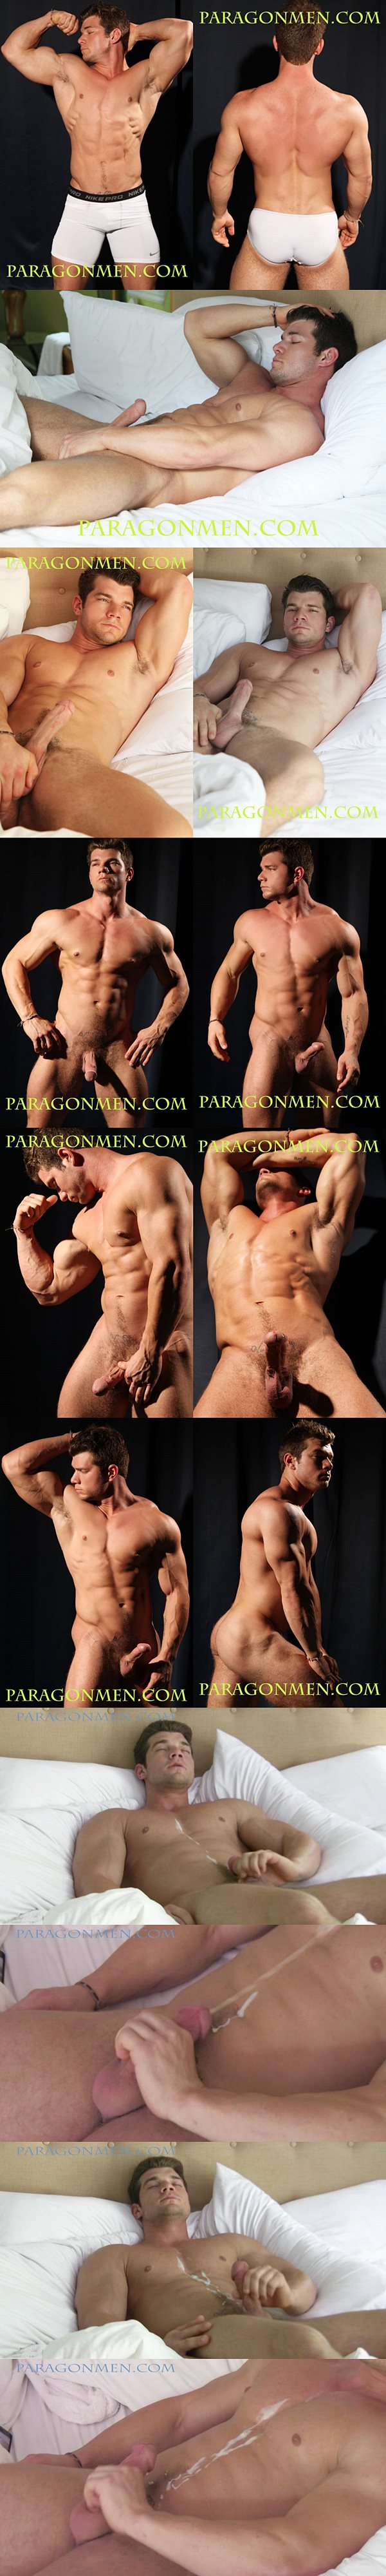 Hot ripped muscle jock Cash blows his big thick loads at Paragonmen